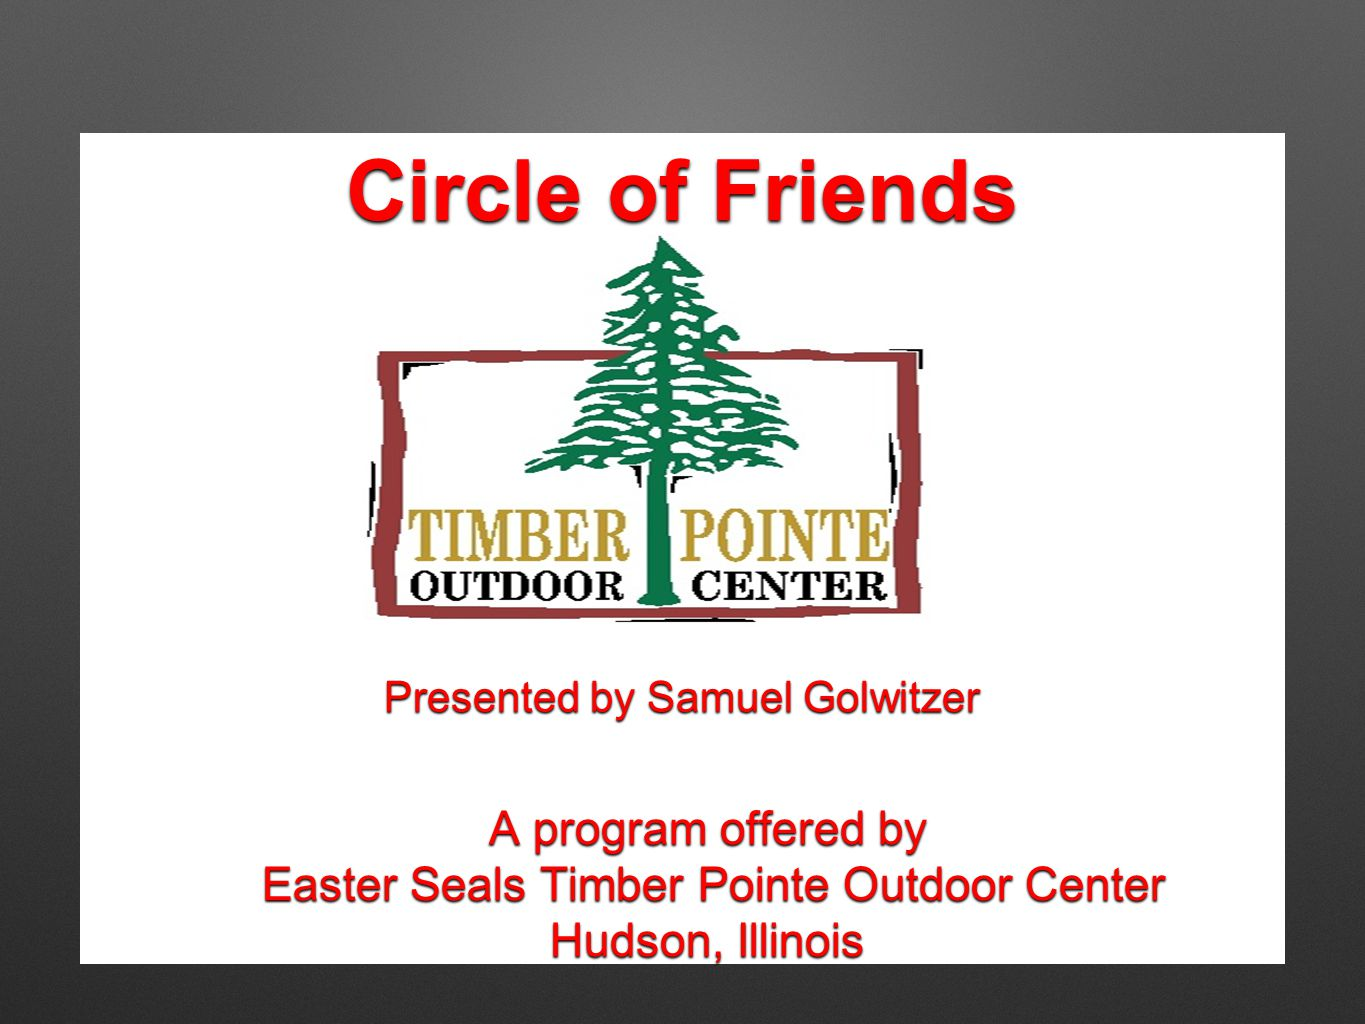 Circle of Friends A program offered by Easter Seals Timber Pointe Outdoor Center Easter Seals Timber Pointe Outdoor Center Hudson, Illinois Presented by Samuel Golwitzer